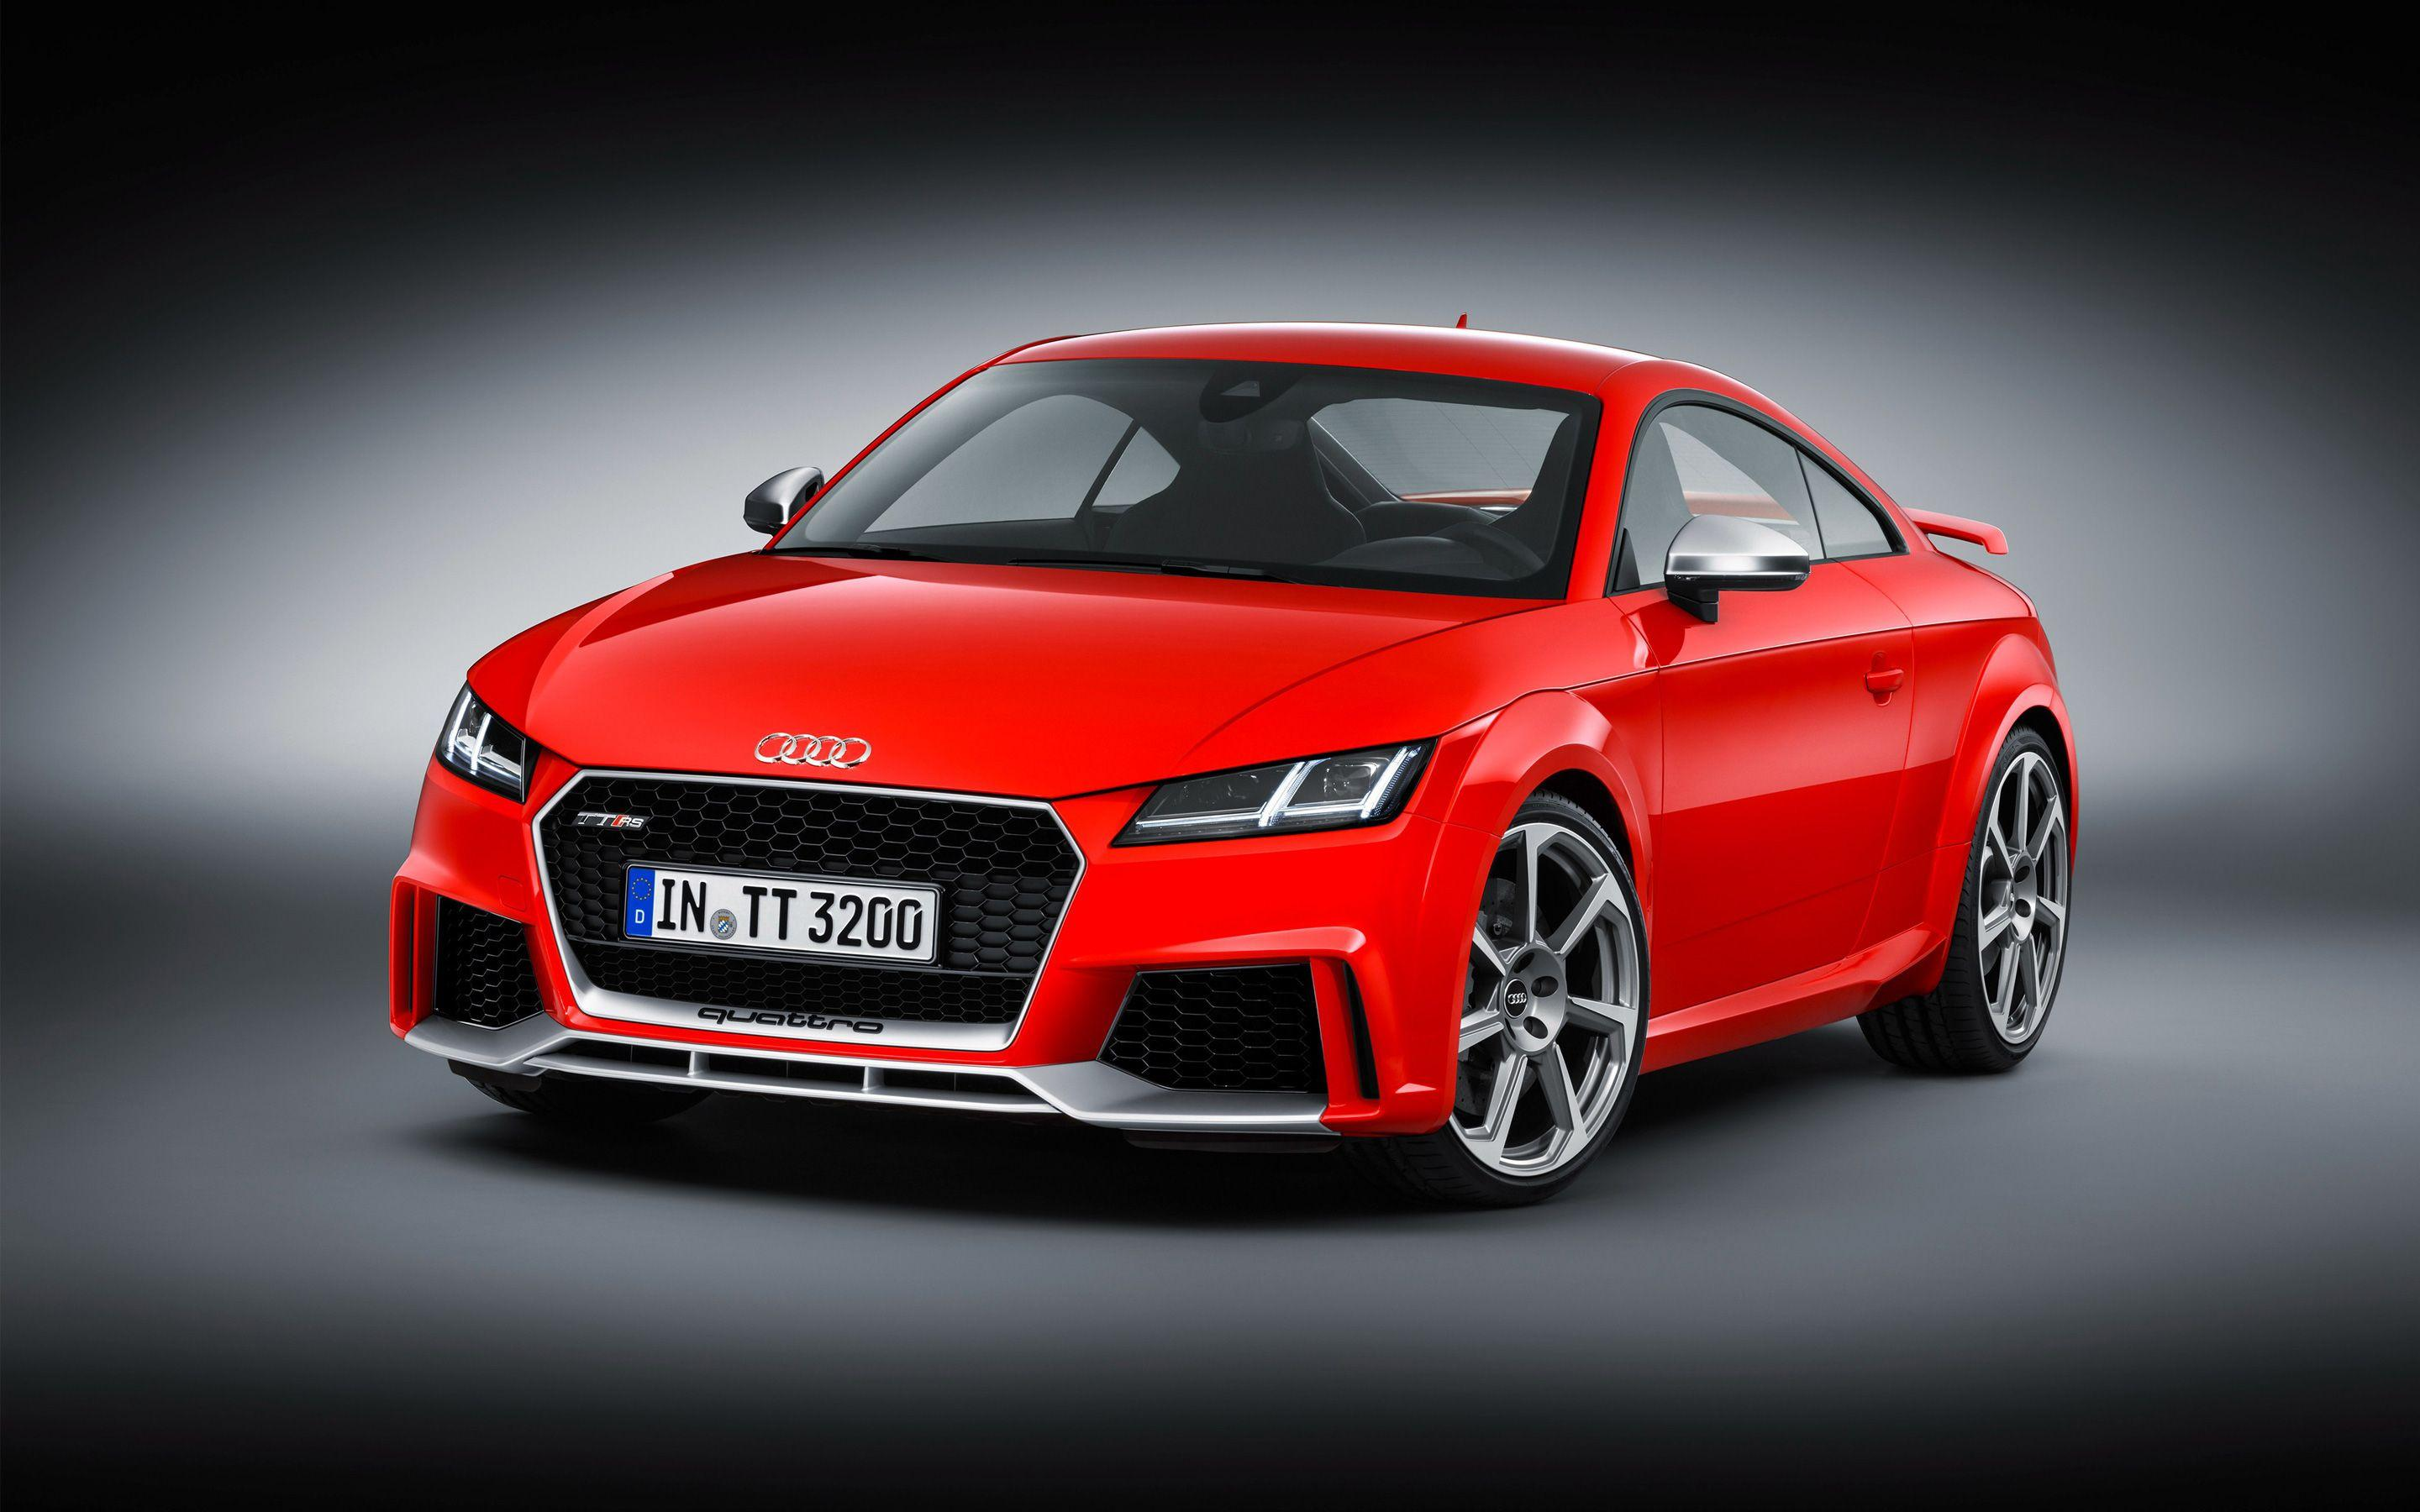 2017 Audi TT RS Coupe Wallpapers